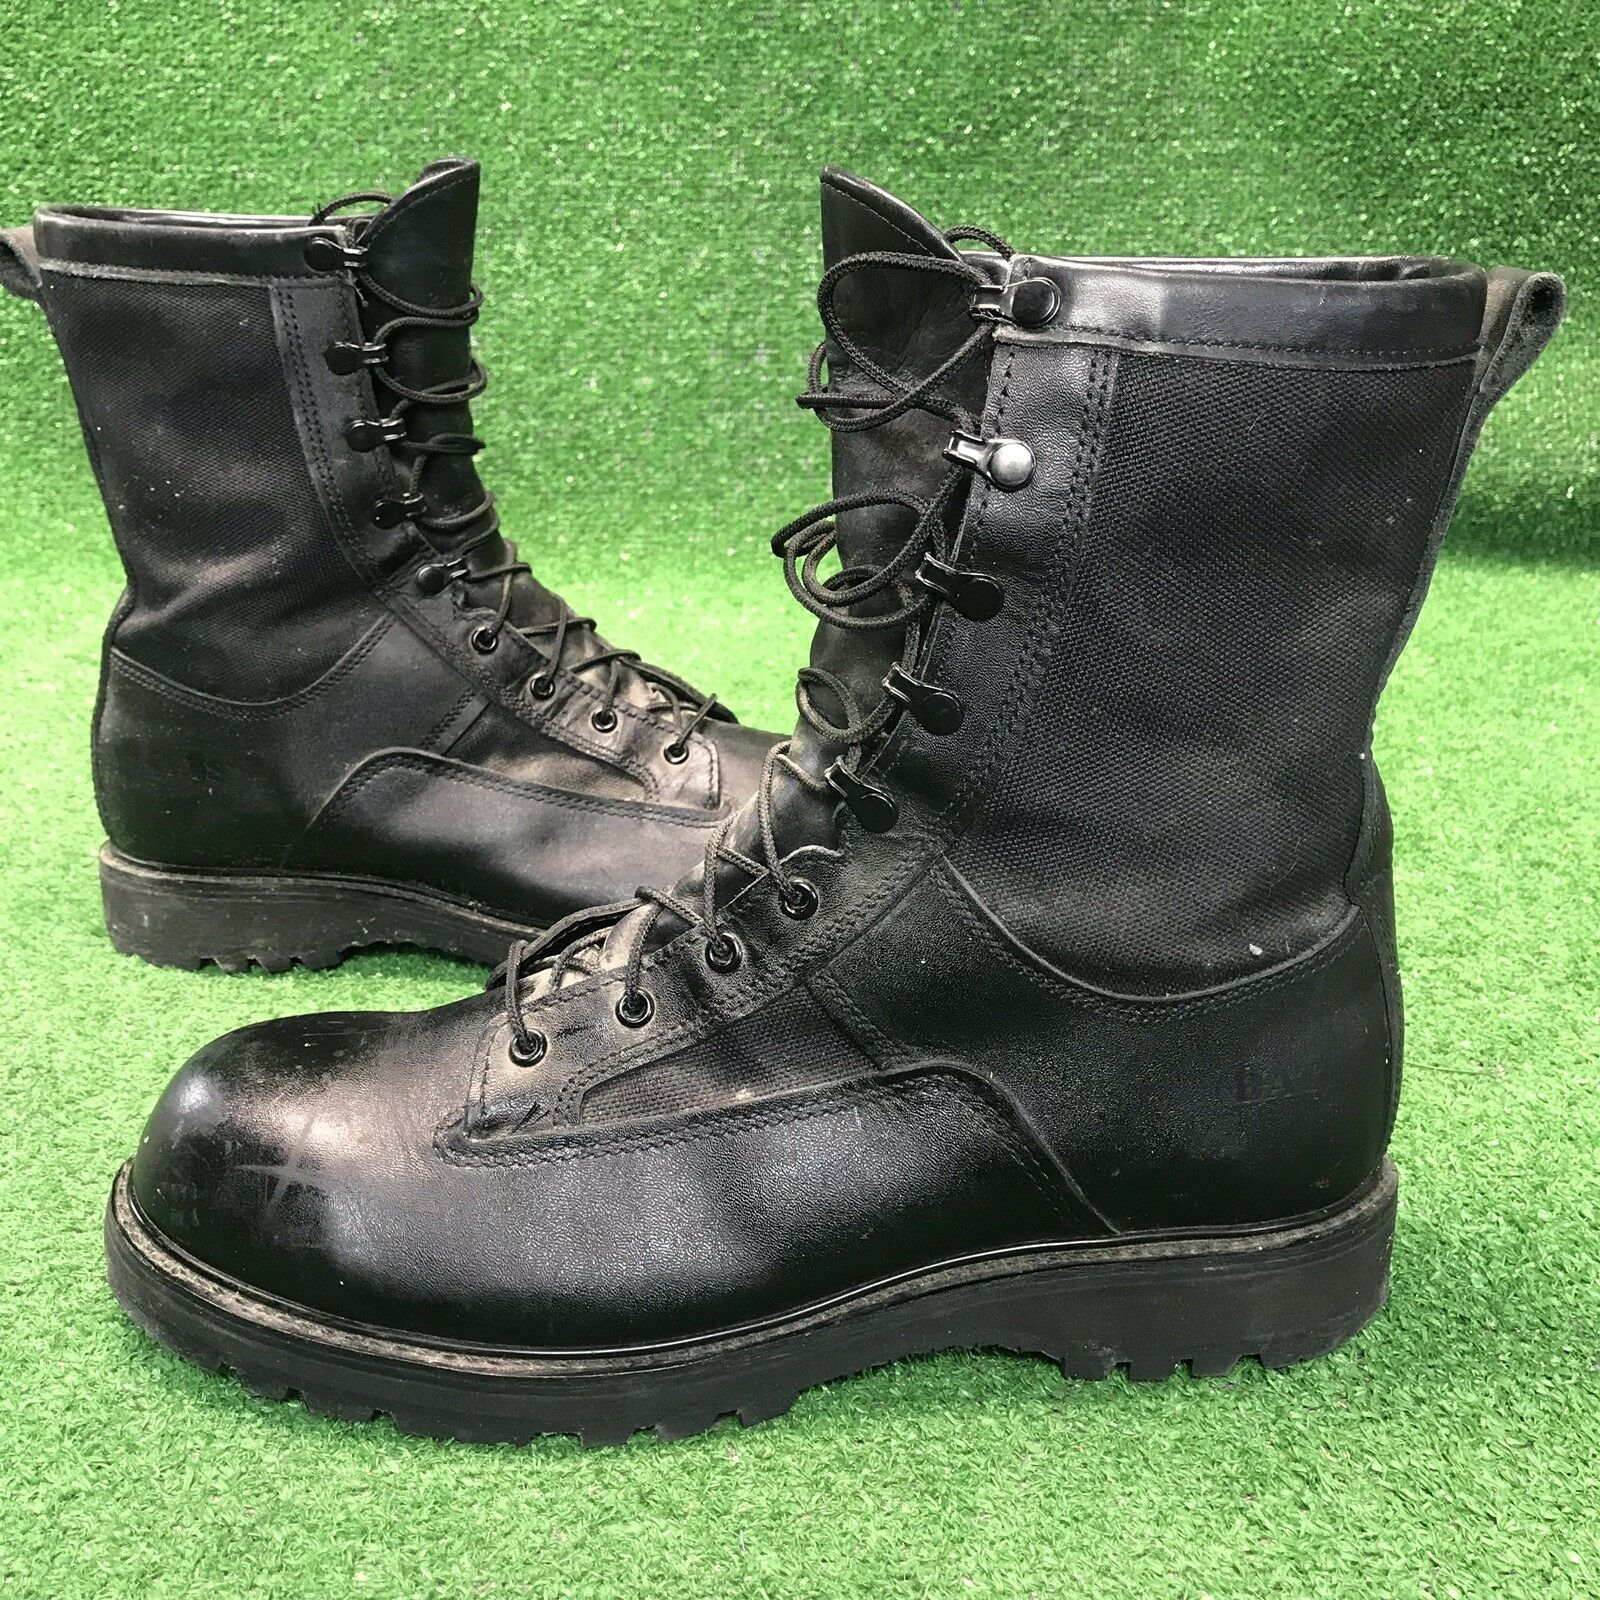 BATES Gore Tex Vibram Tall Leather Work Military Hiking Combat Boots Men's 13 R